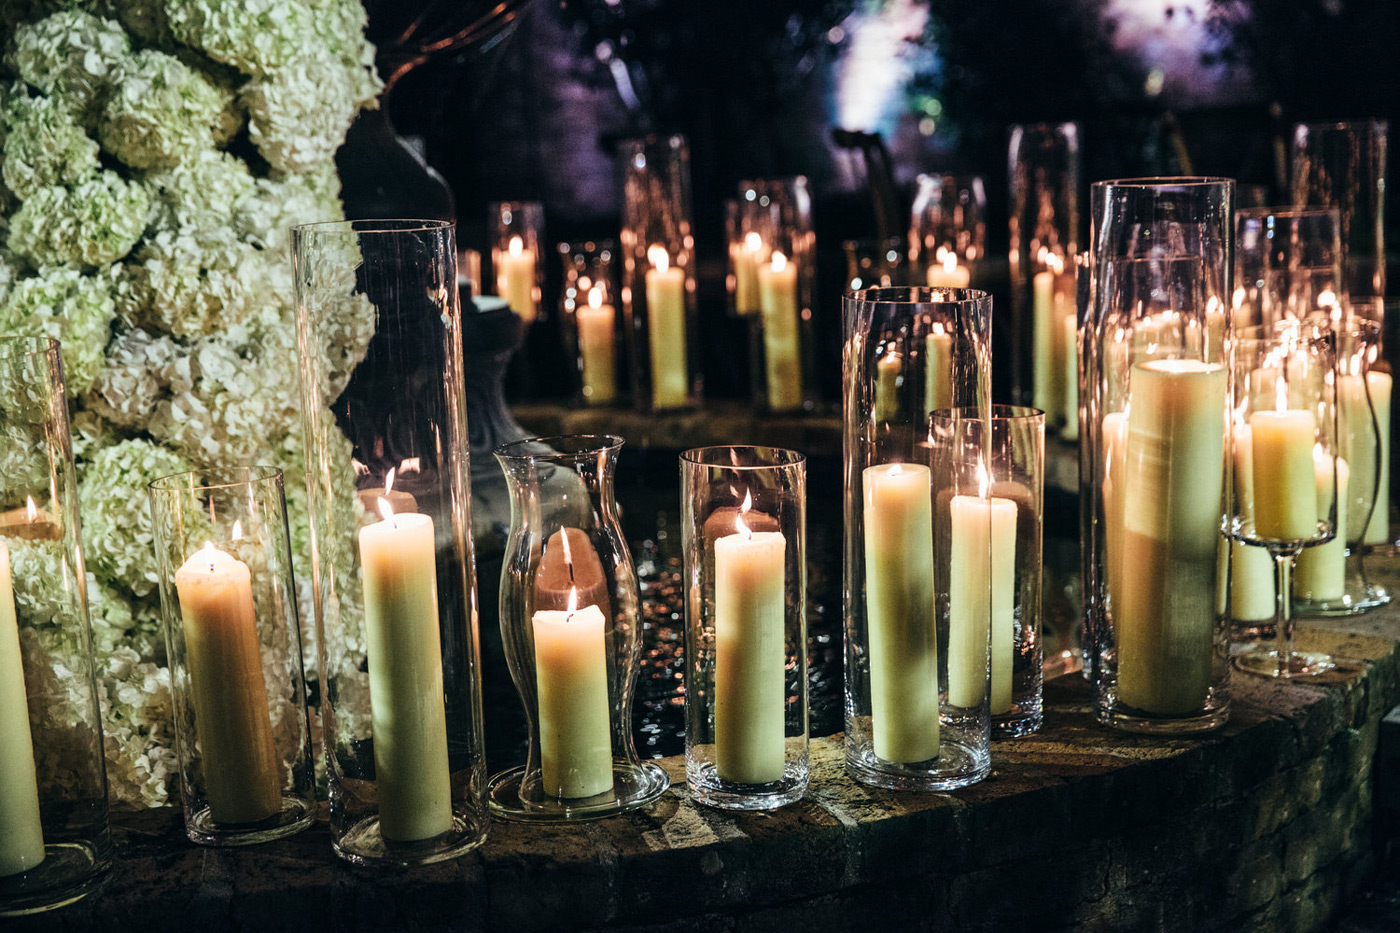 Candles in tall glass vases layered around a fountain in the night